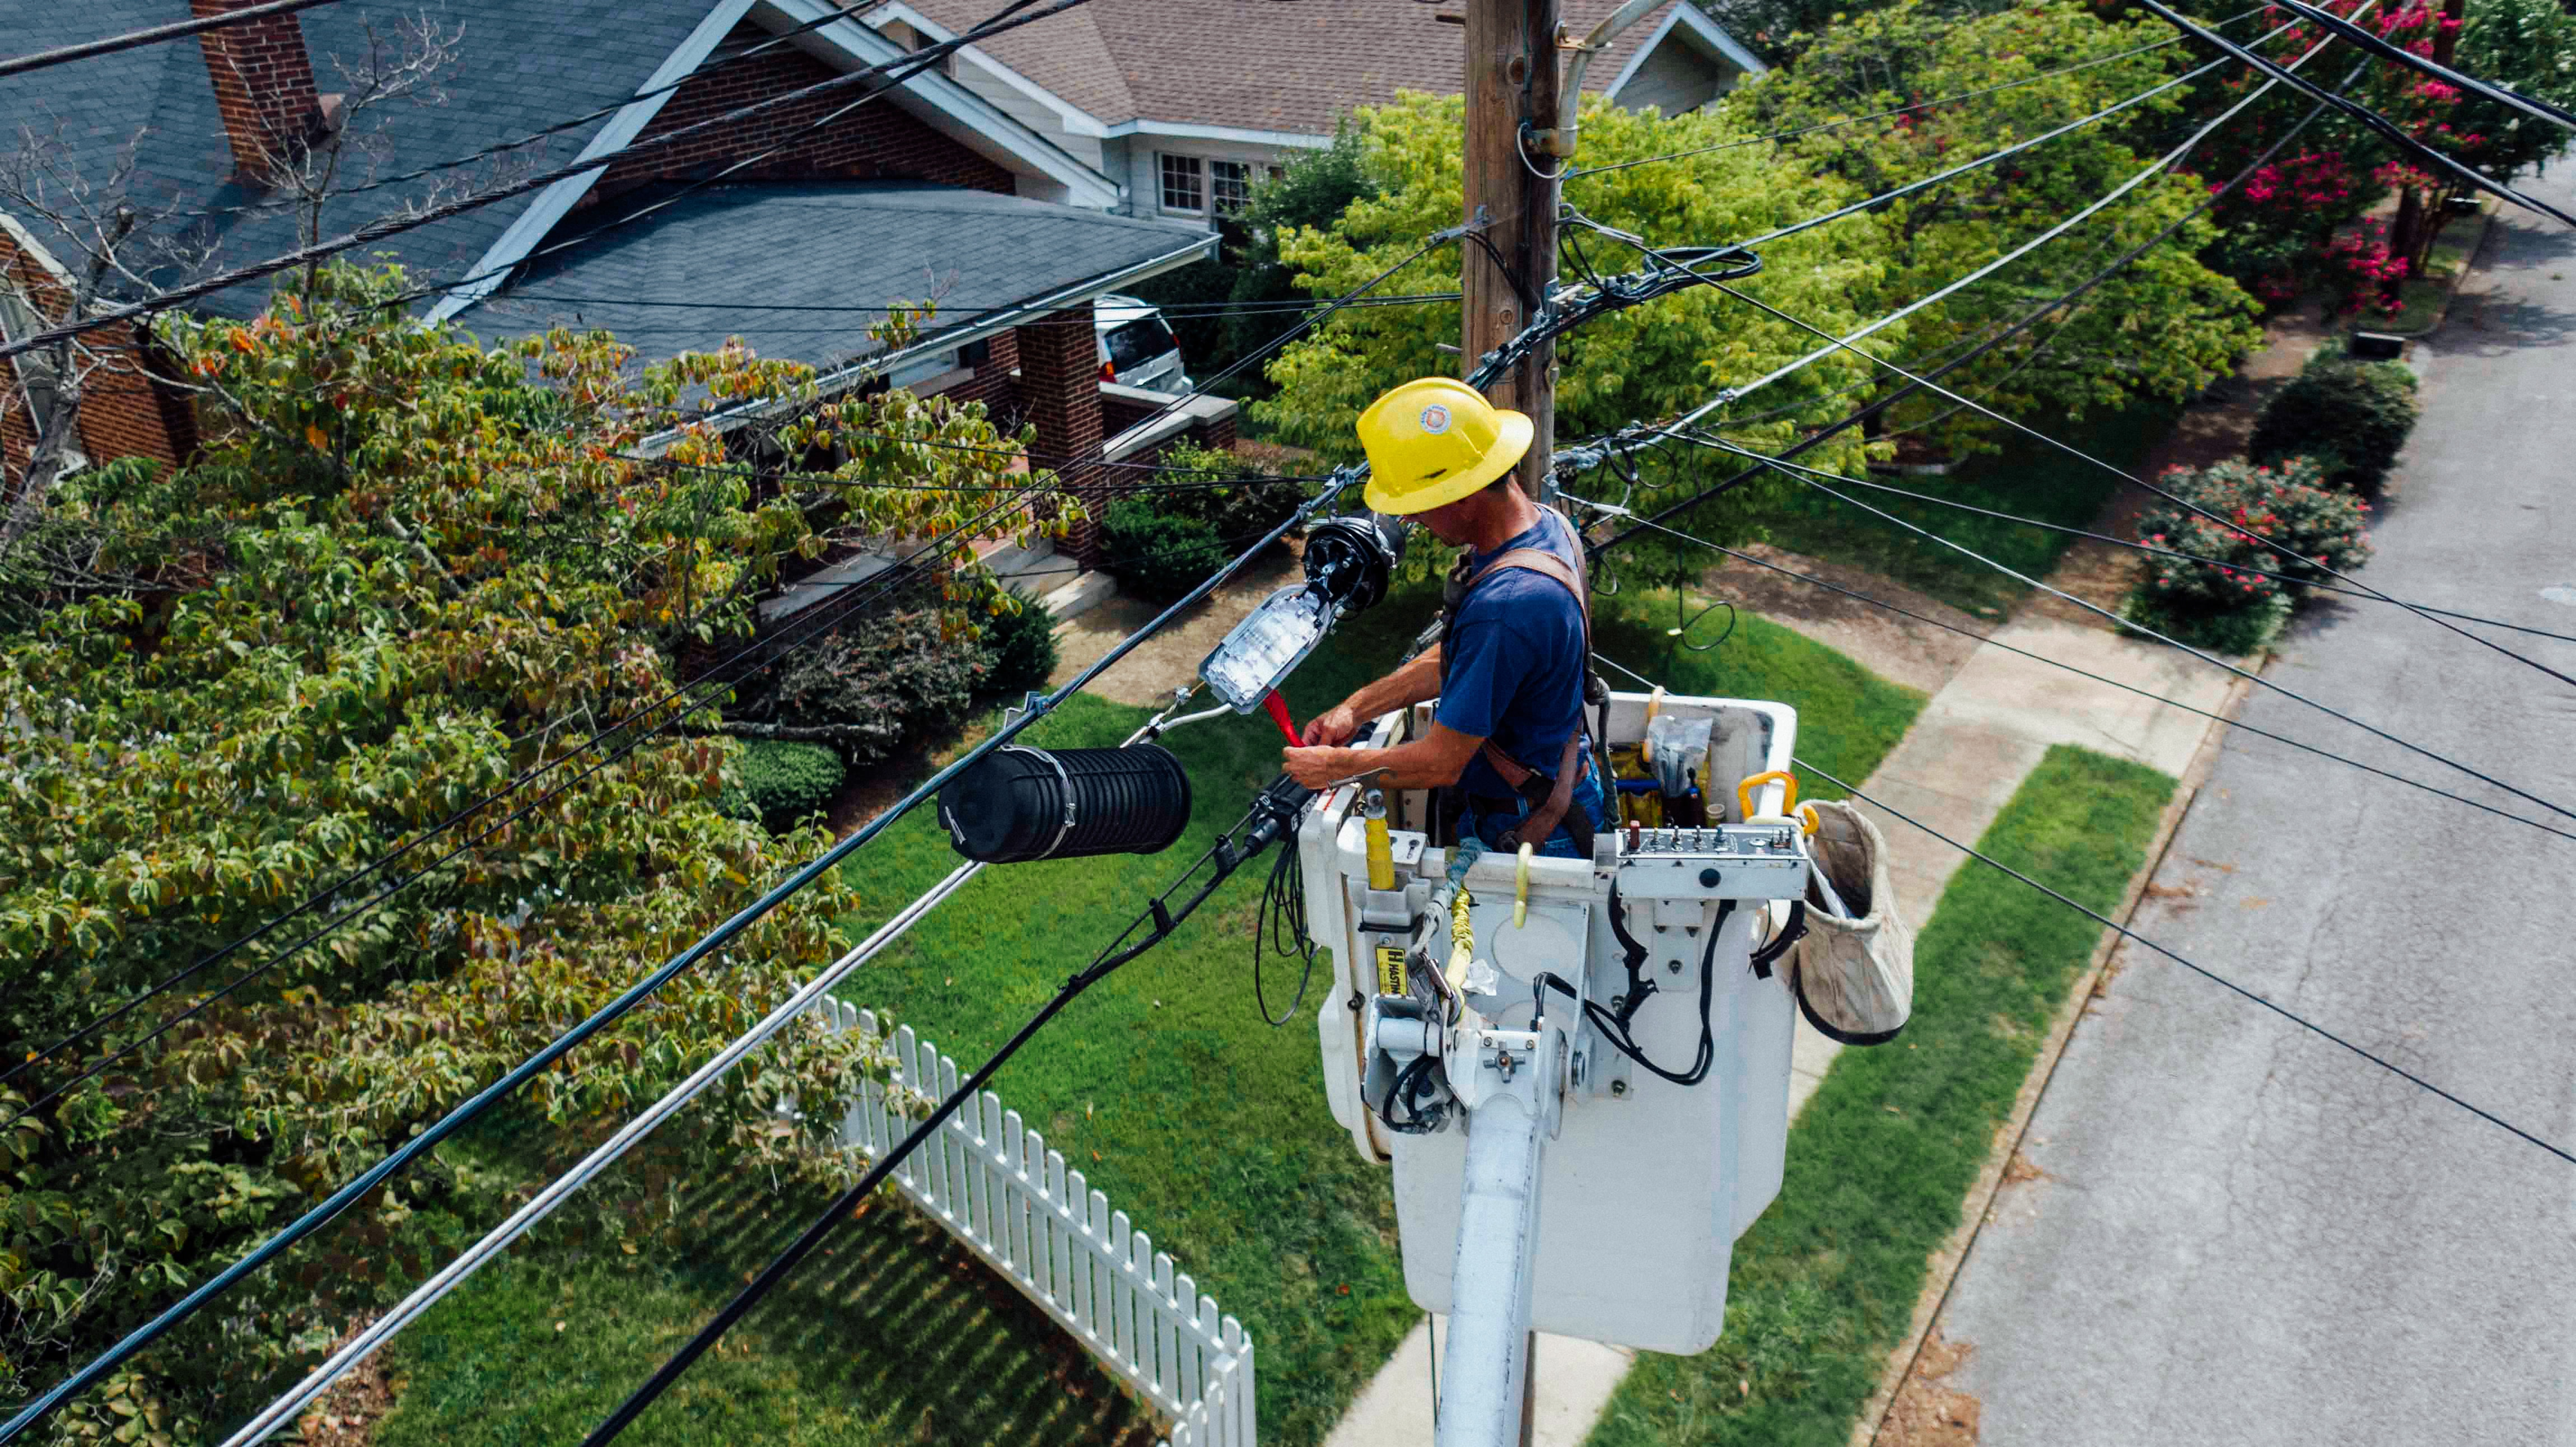 Hydro worker working on power lines